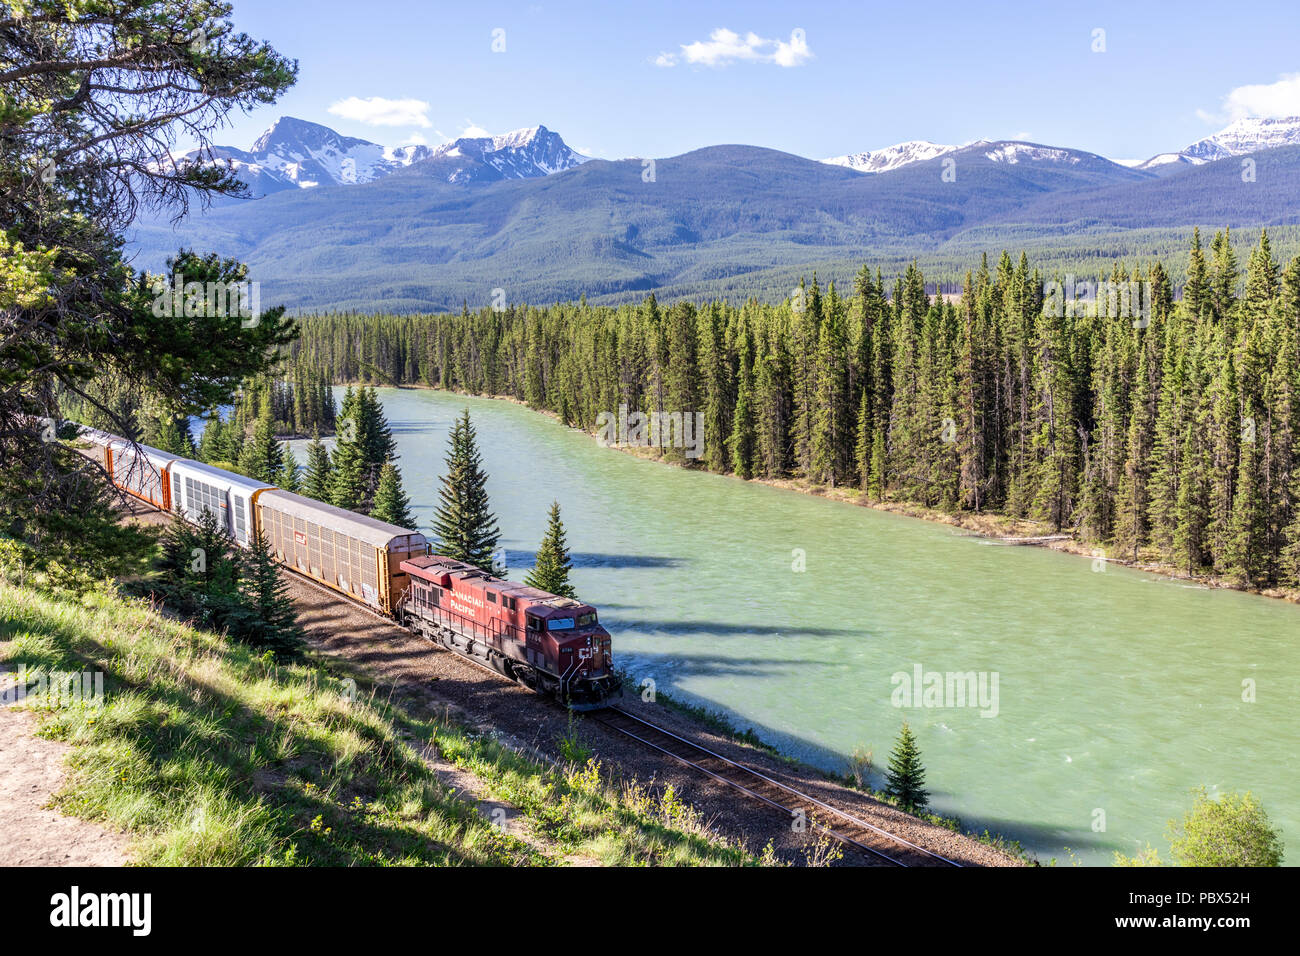 A freight train on the Canadian Pacific Railway running beside the Bow River and Rocky Mountains at Castle Junction NW of Banff, Alberta, Canada Stock Photo